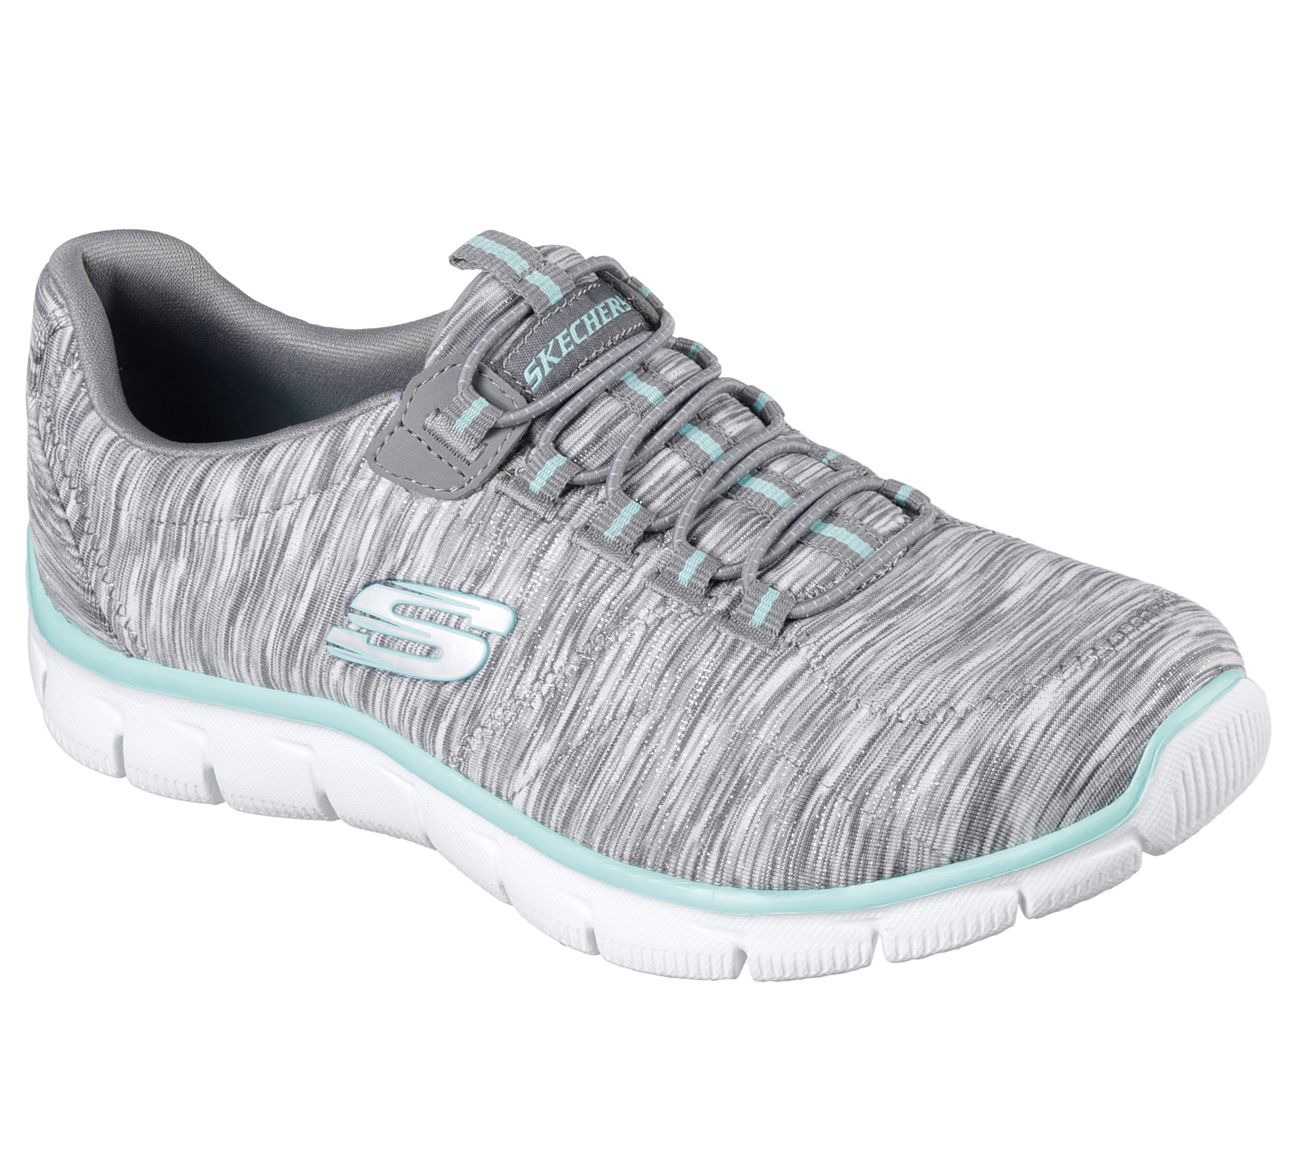 63a2a0257fb6 Win at life in style and sporty comfort wearing the SKECHERS Relaxed  Fit reg   Empire - Game On shoe. Sporty striped flat knit fabric upper in a  bungee ...